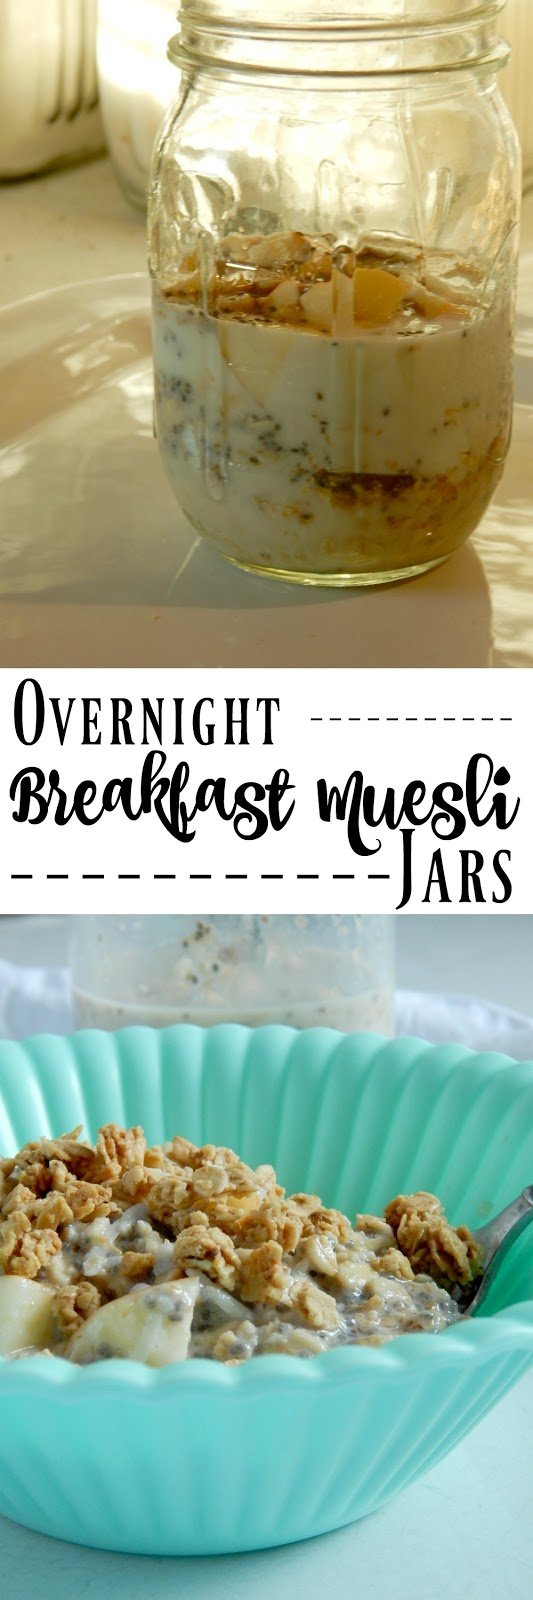 Overnight Breakfast Muesli Jars...a fun, healthy breakfast!  Oats, ground flaxseed, chia seeds, coconut, diced fruit, milk and more make the most delicious, yummy breakfast! (sweetandsavoryfood.com)